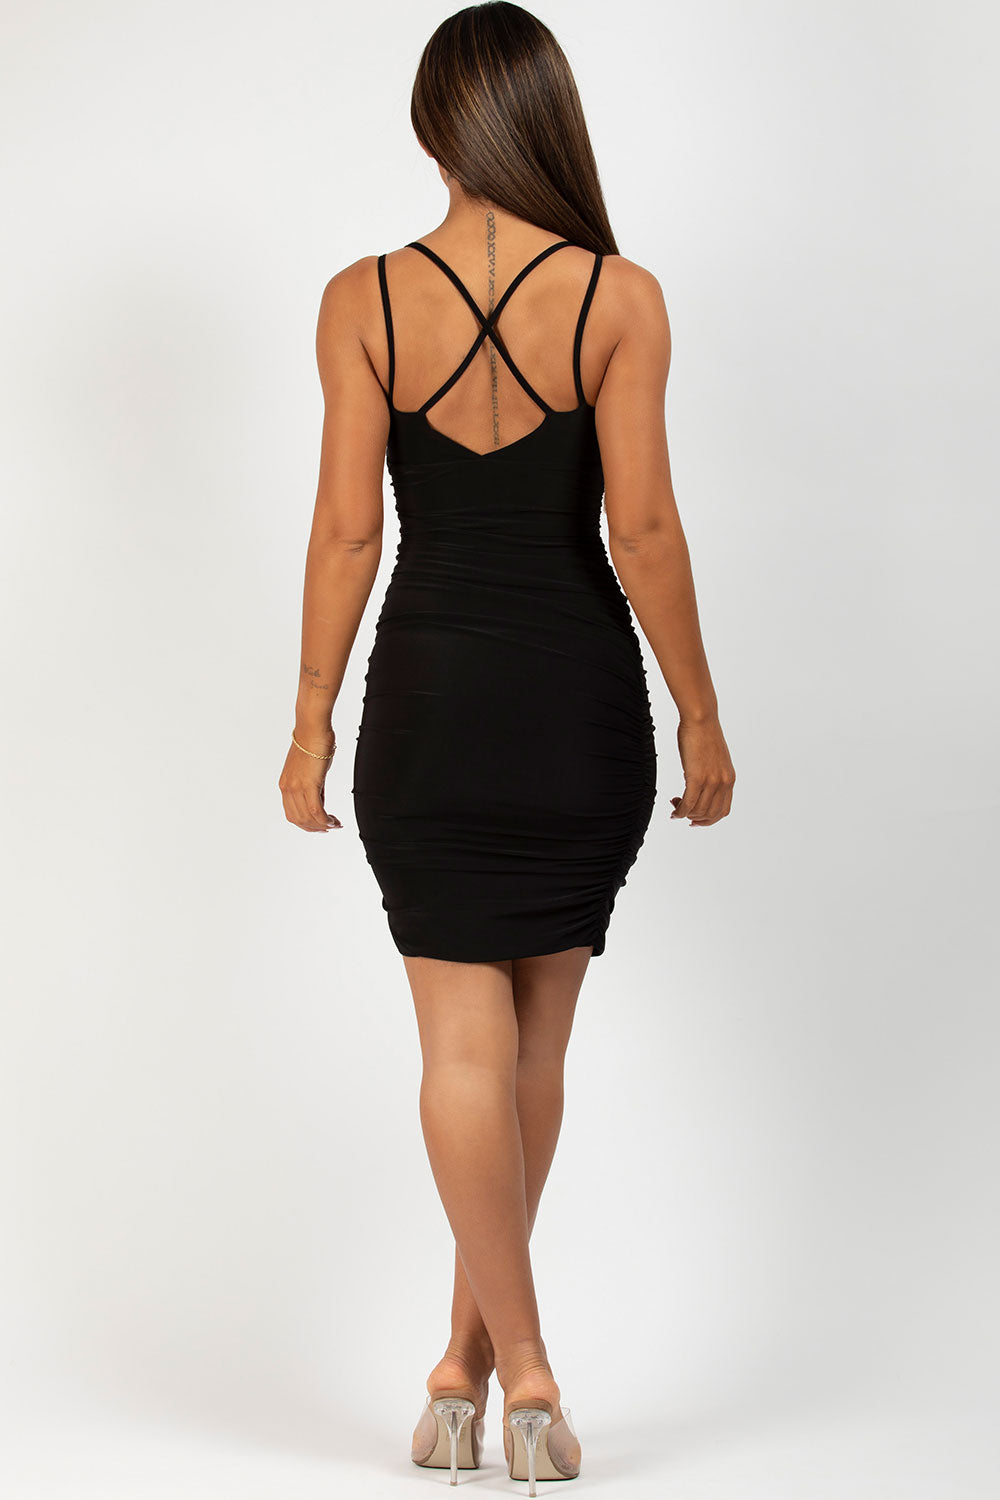 black ruched starppy dress